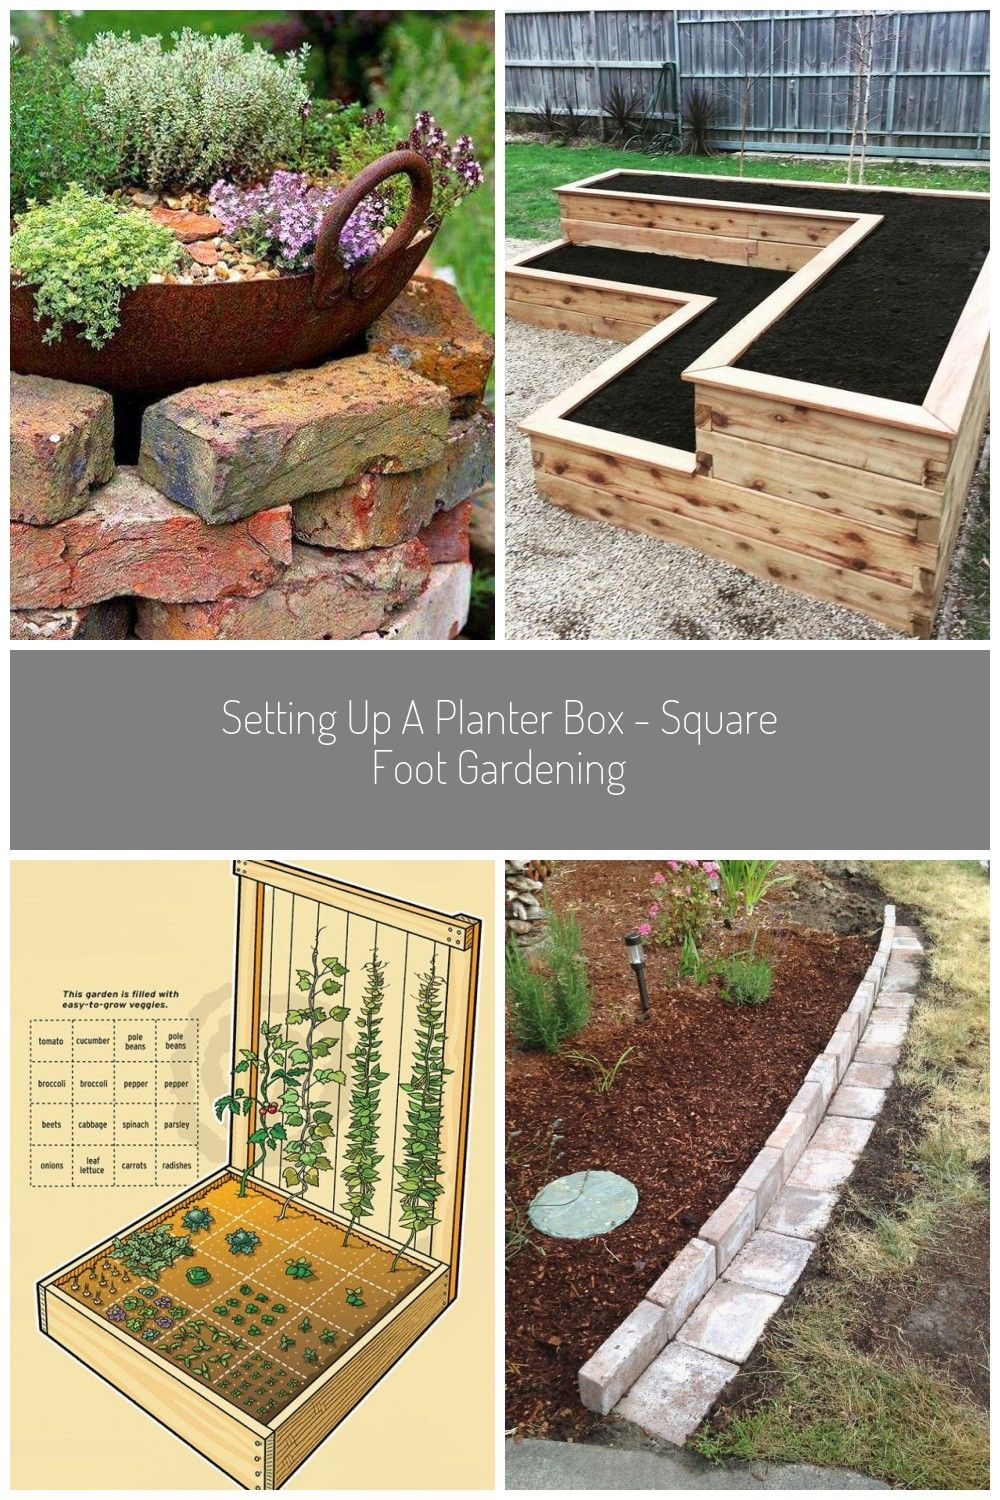 14 Brick Flower Bed Design Ideas You Can Replicate Instantlybed brick design flower ideas instantly replicateHochbeete einjhrige Blumen und Kruter Blumen diyeasygardenideas einjhrige Hochbeete Kruter undPhoto Credit I love square foot gardening SFG Ive done i #gardening ideas flower 14 Brick Flower Bed Design Ideas You Can Replicate Instantlybed brick design flower ideas instantly replicateHochbeete einjhrige Blumen und Kruter Blumen diyeasygardenideas einjhrige Hochbeete Kruter undSet